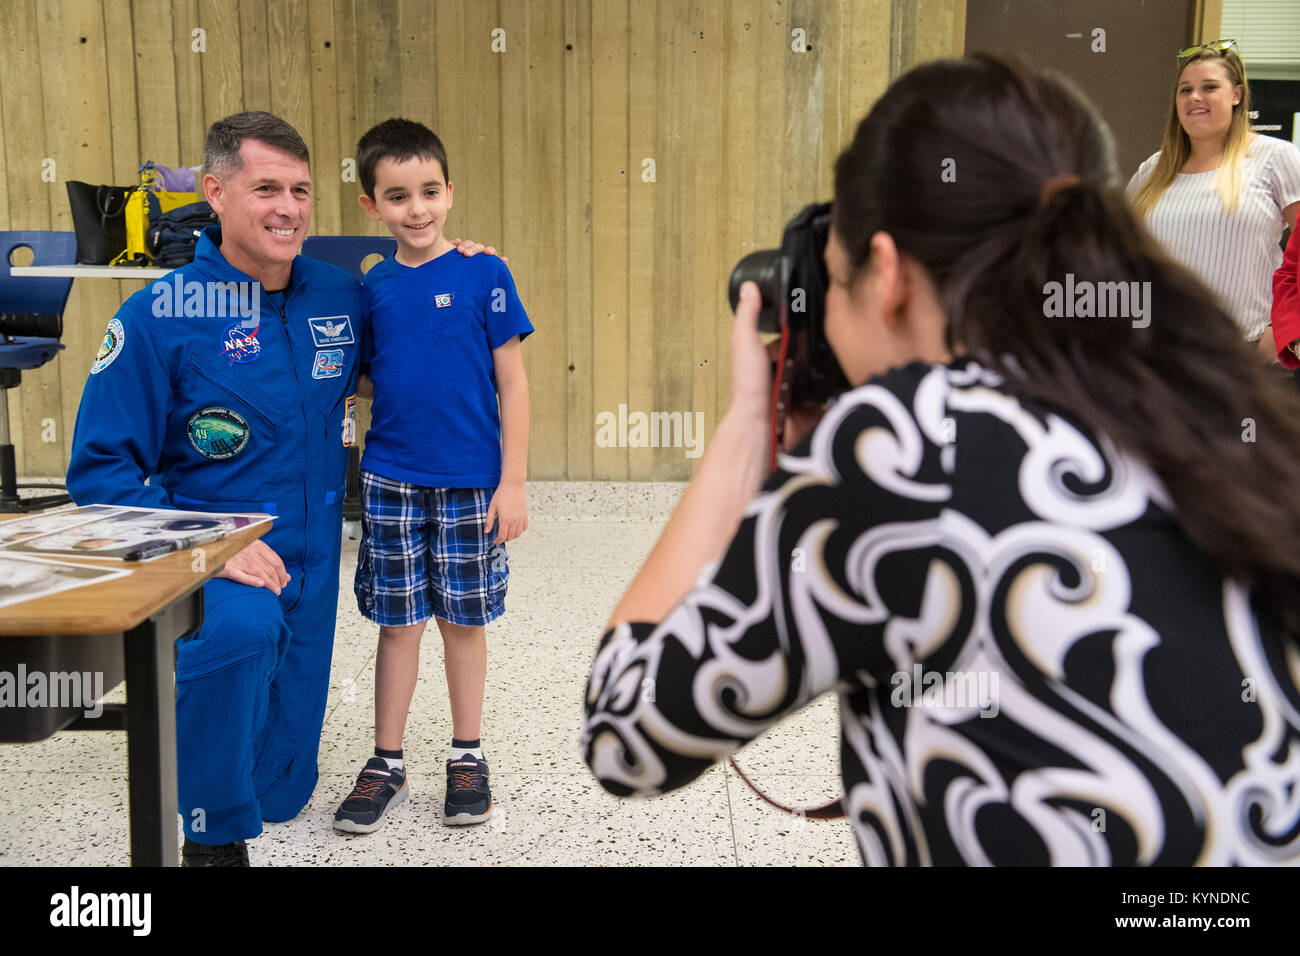 NASA astronaut Shane Kimbrough poses for a photo with an audience member after giving a presentation about his time - Stock Image